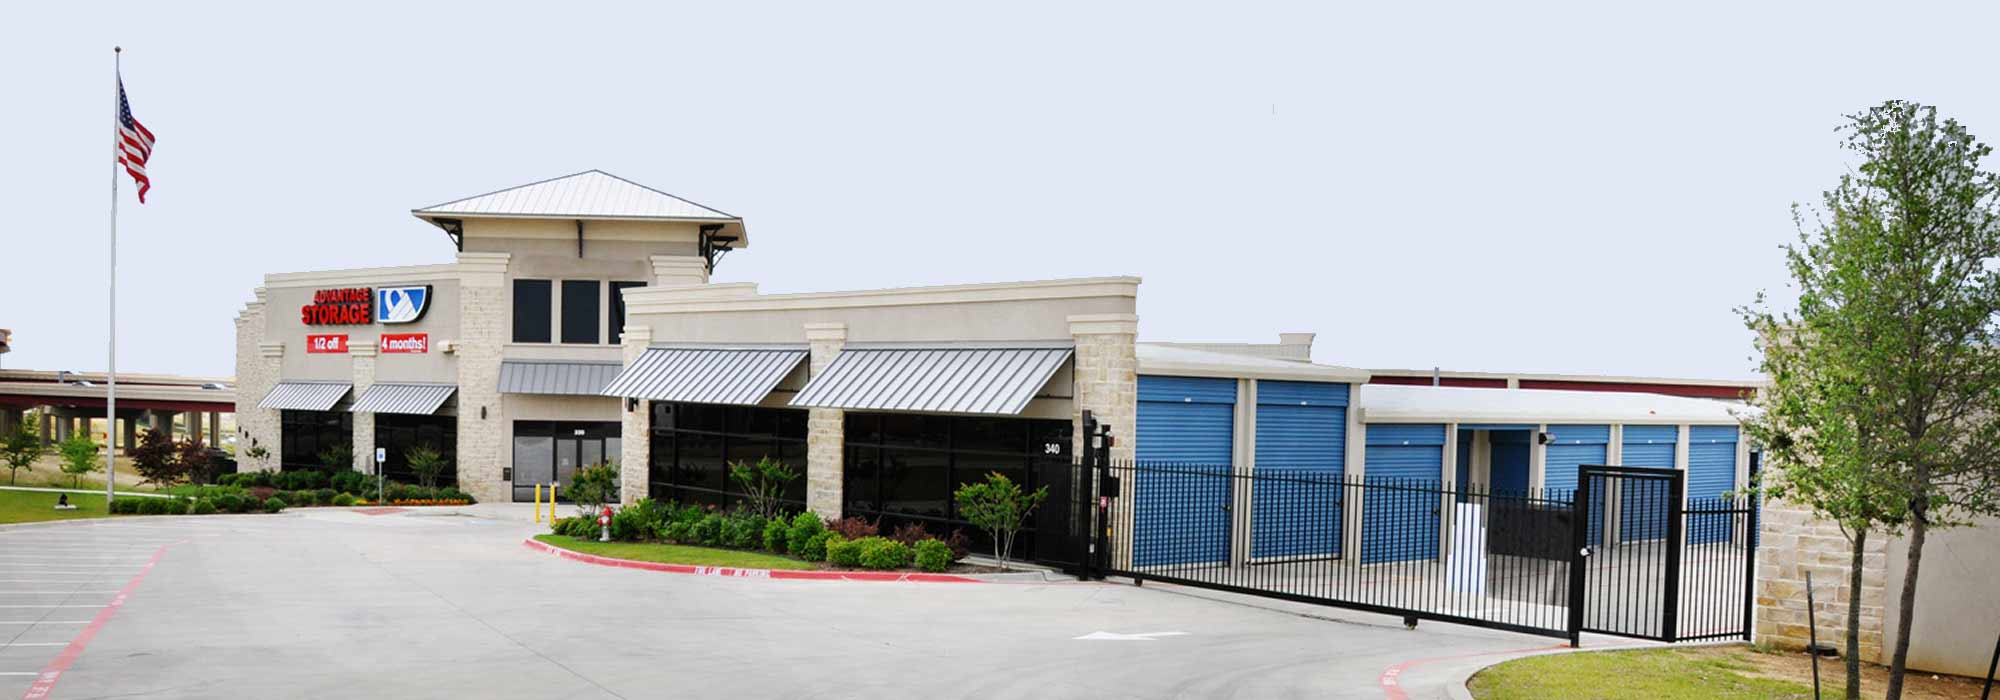 Self storage in Irving TX